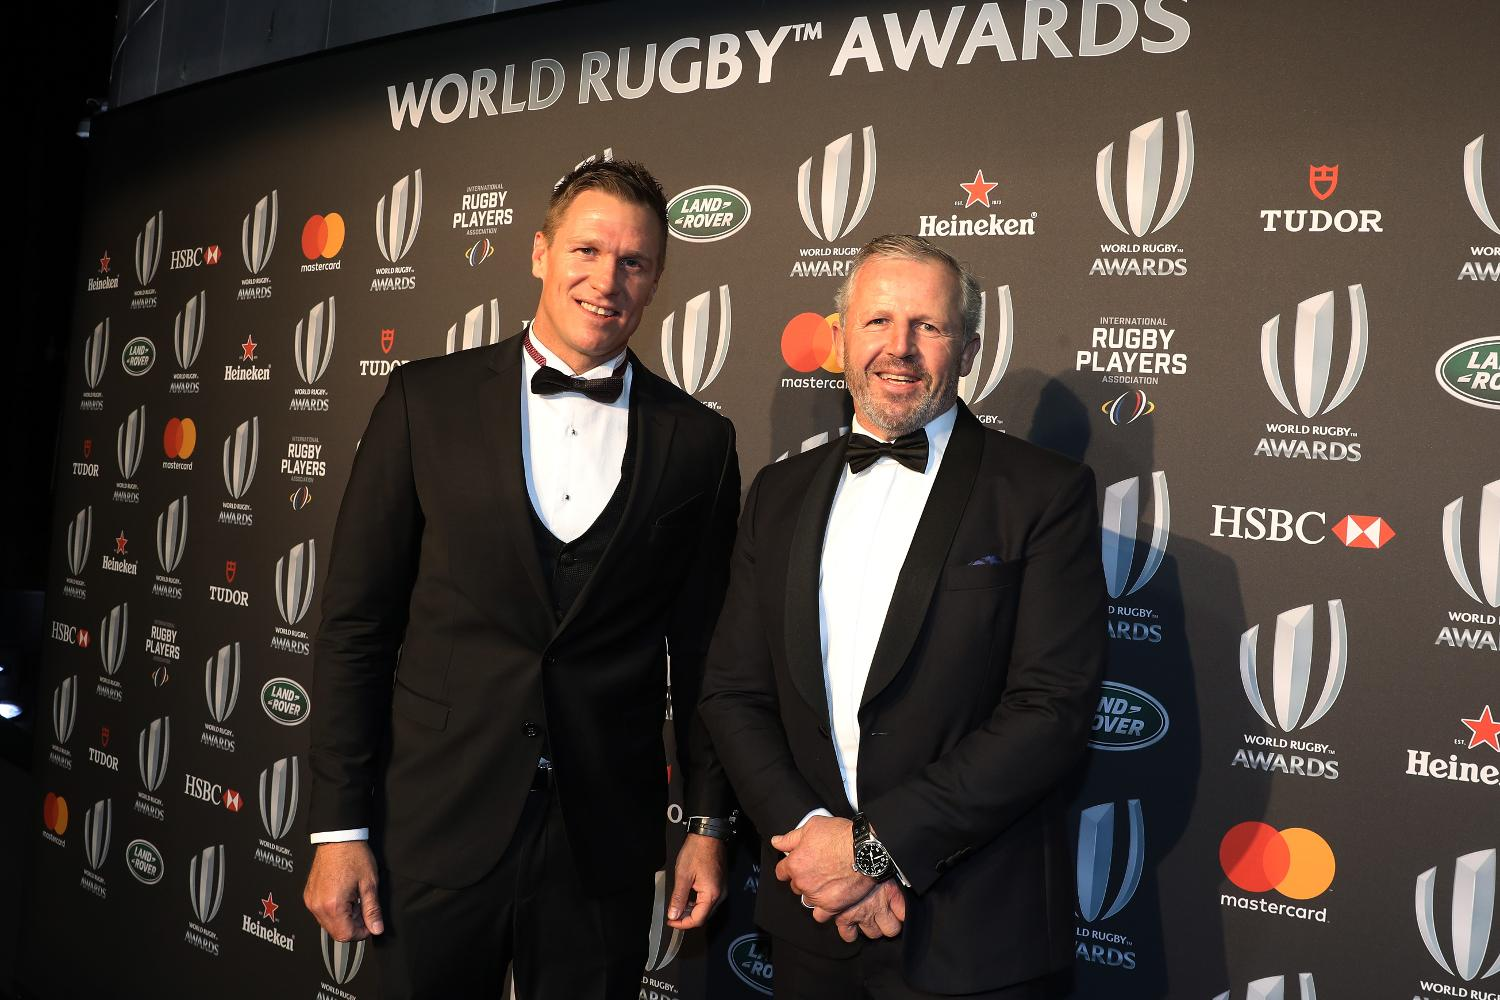 Jean de Villiers and Sean Fitzpatrick attend the World Rugby Awards 2017